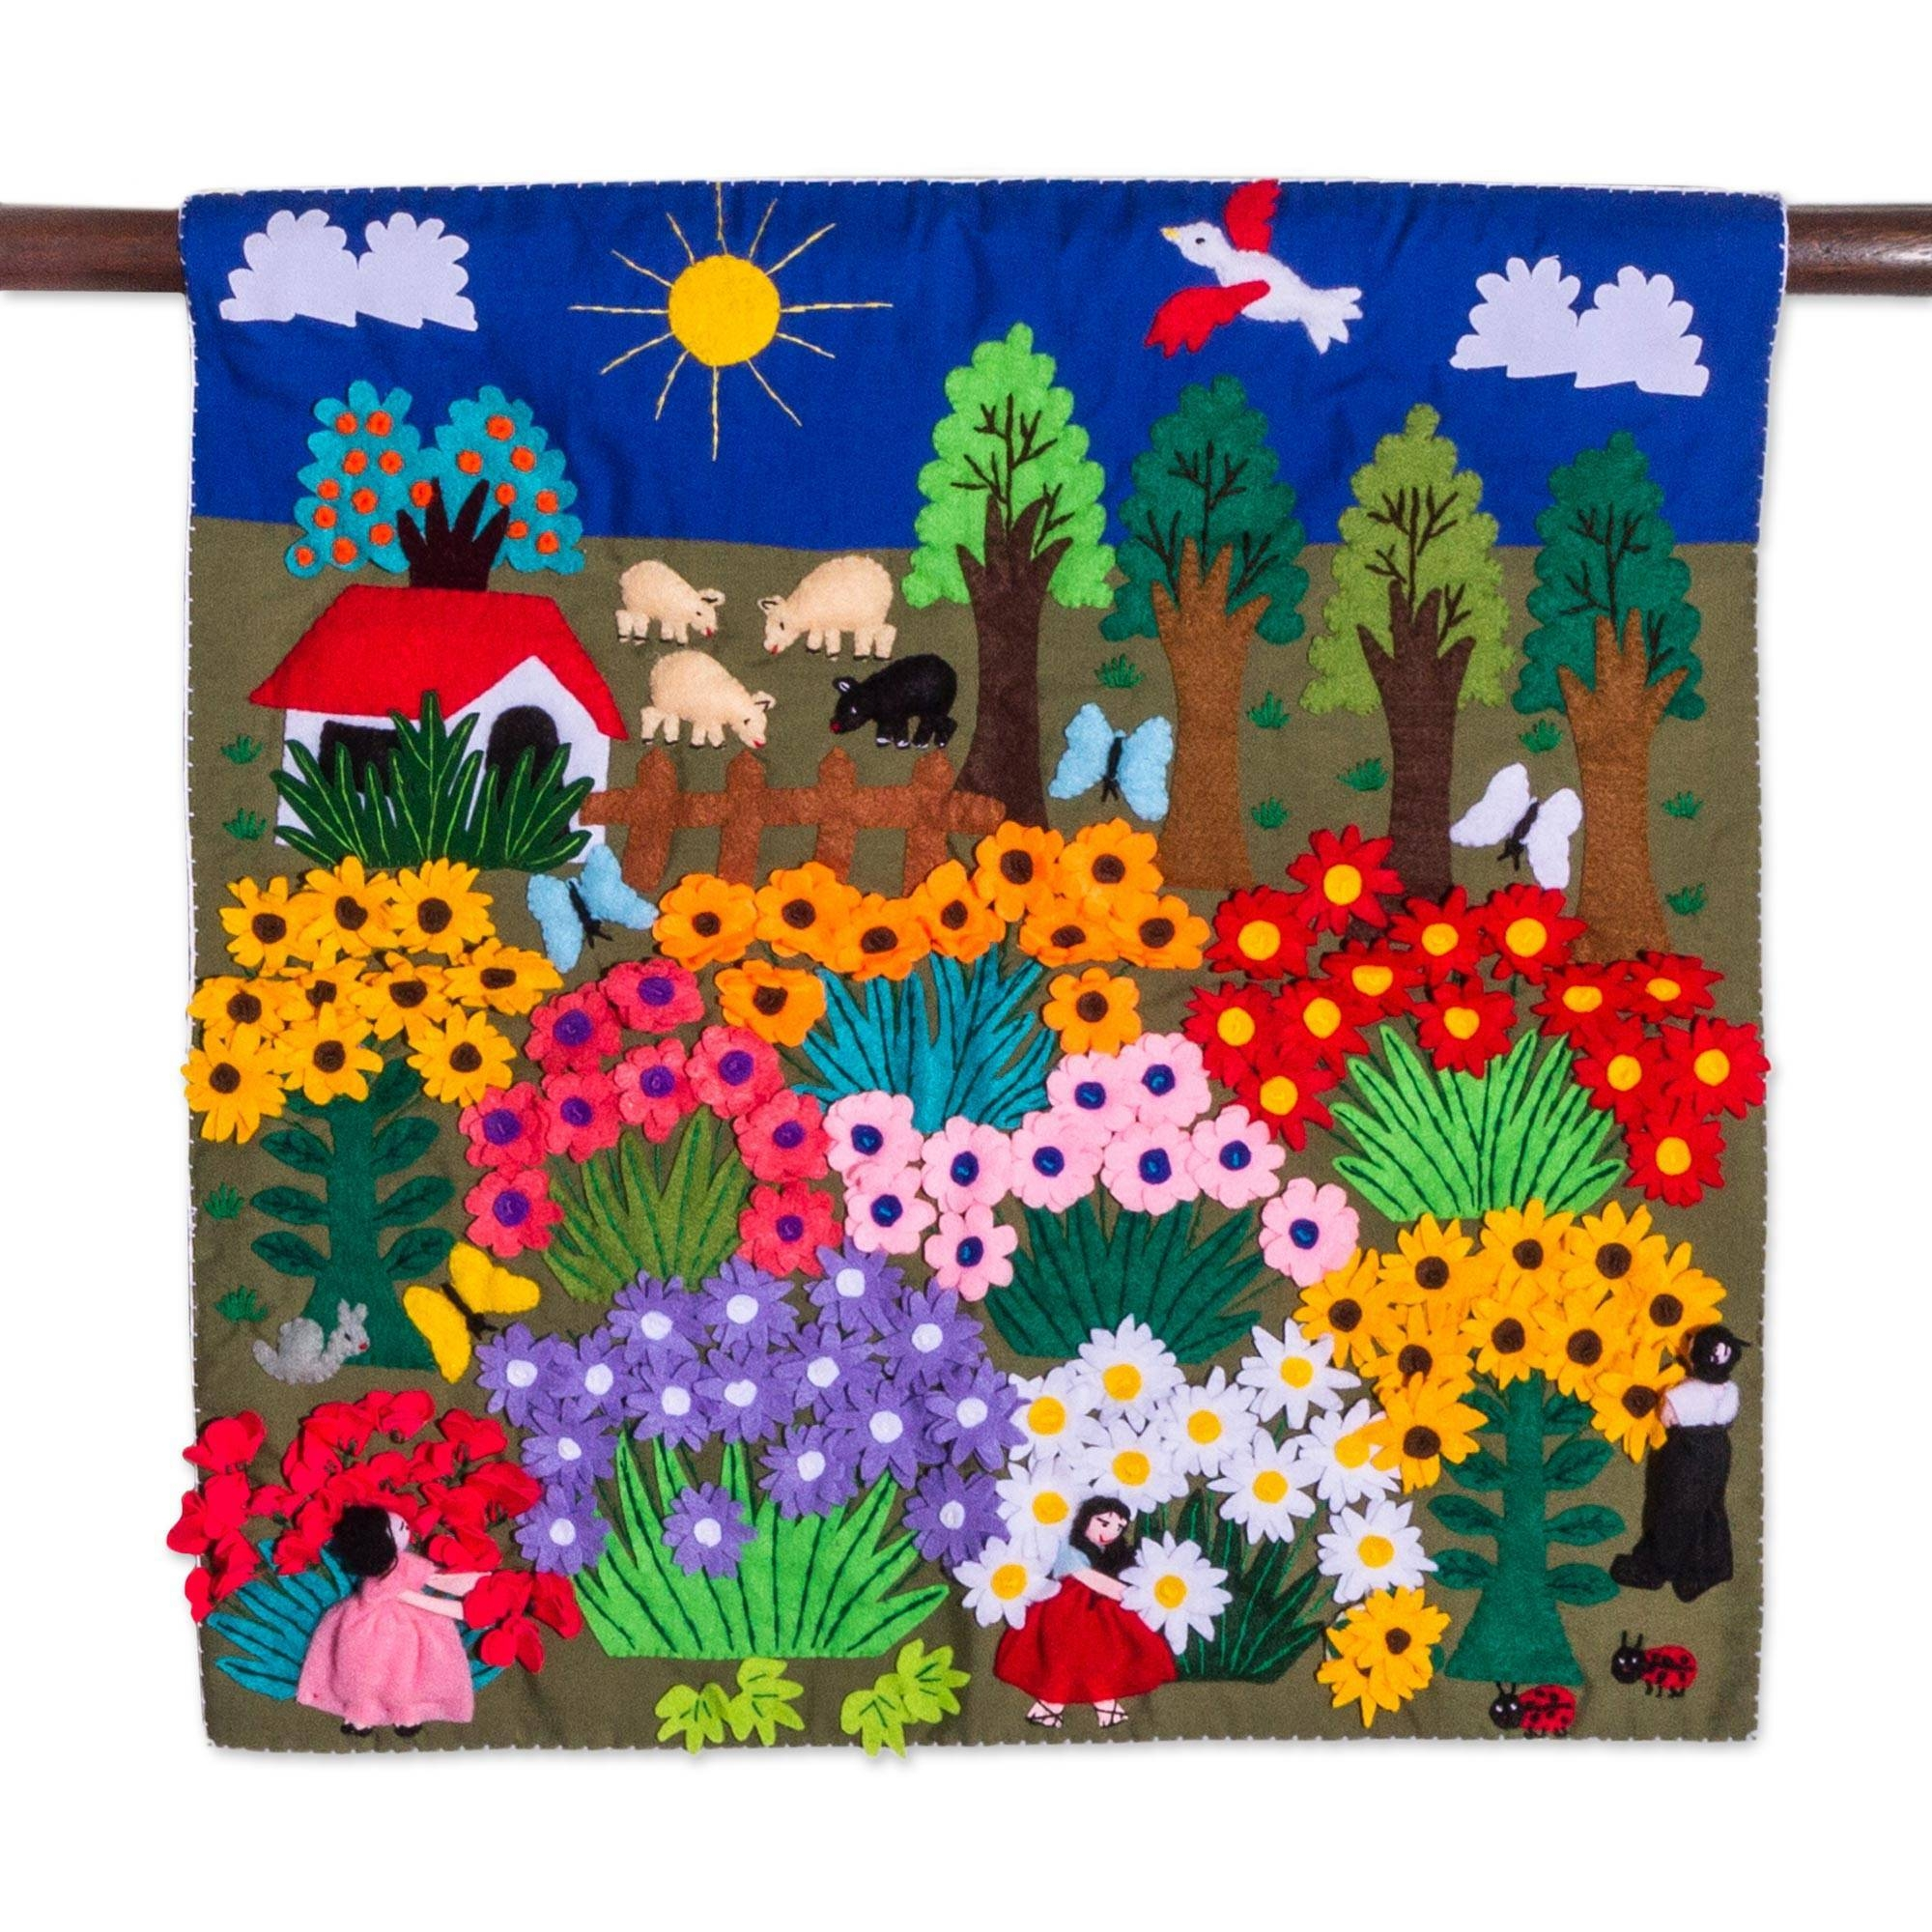 Cheerful Applique Arpilleria Wall Hanging From Peru – Harvesting Pertaining To Most Recently Released Peruvian Wall Art (View 6 of 30)